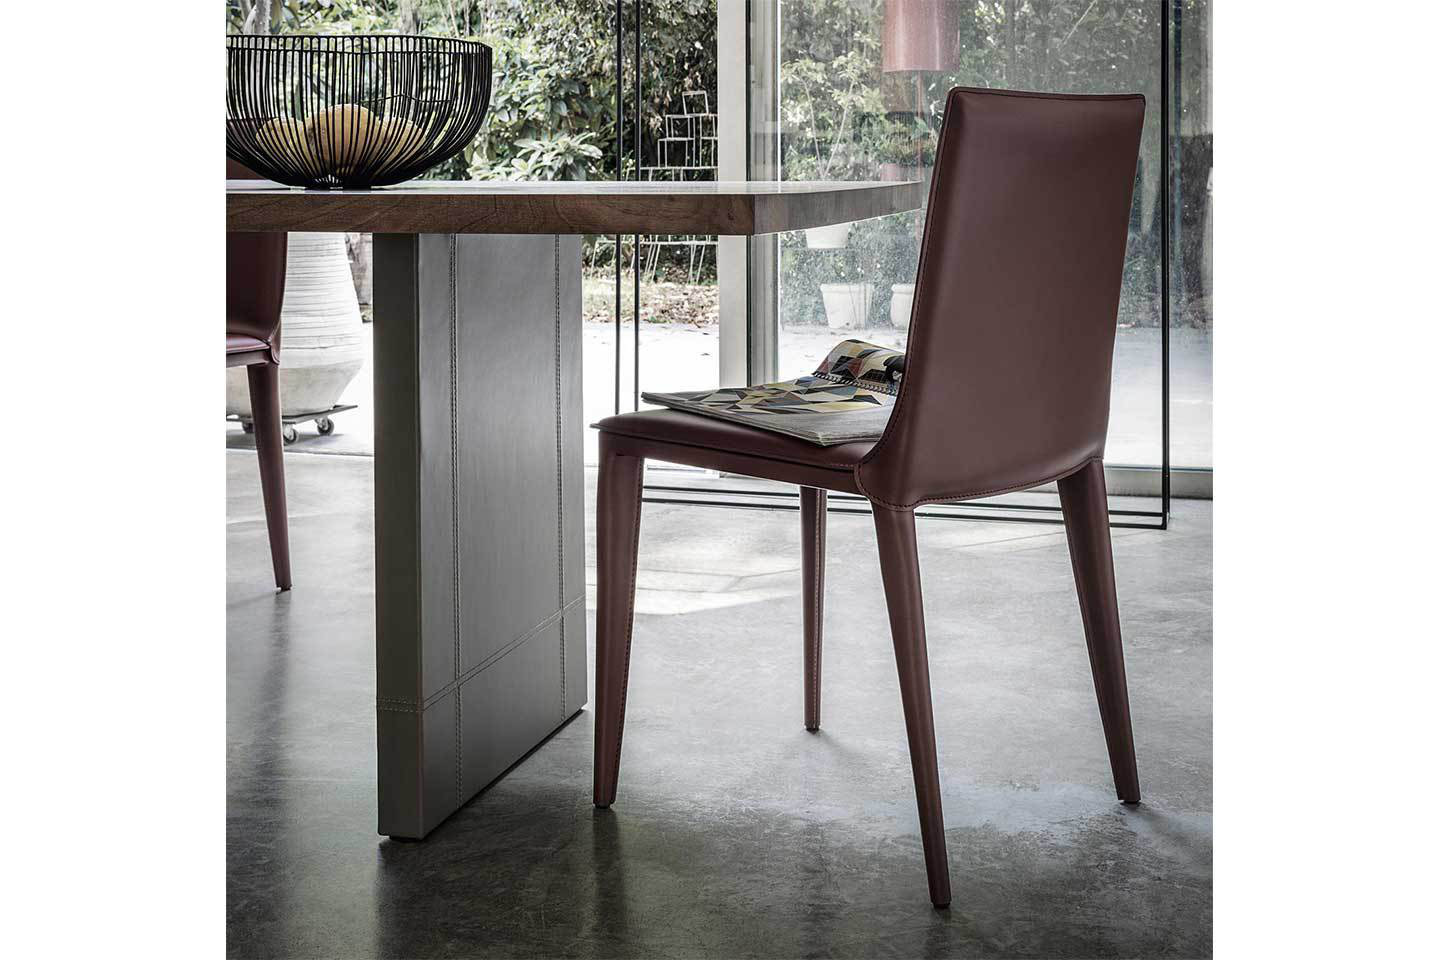 Mobili Italia_Frag Latina side chair